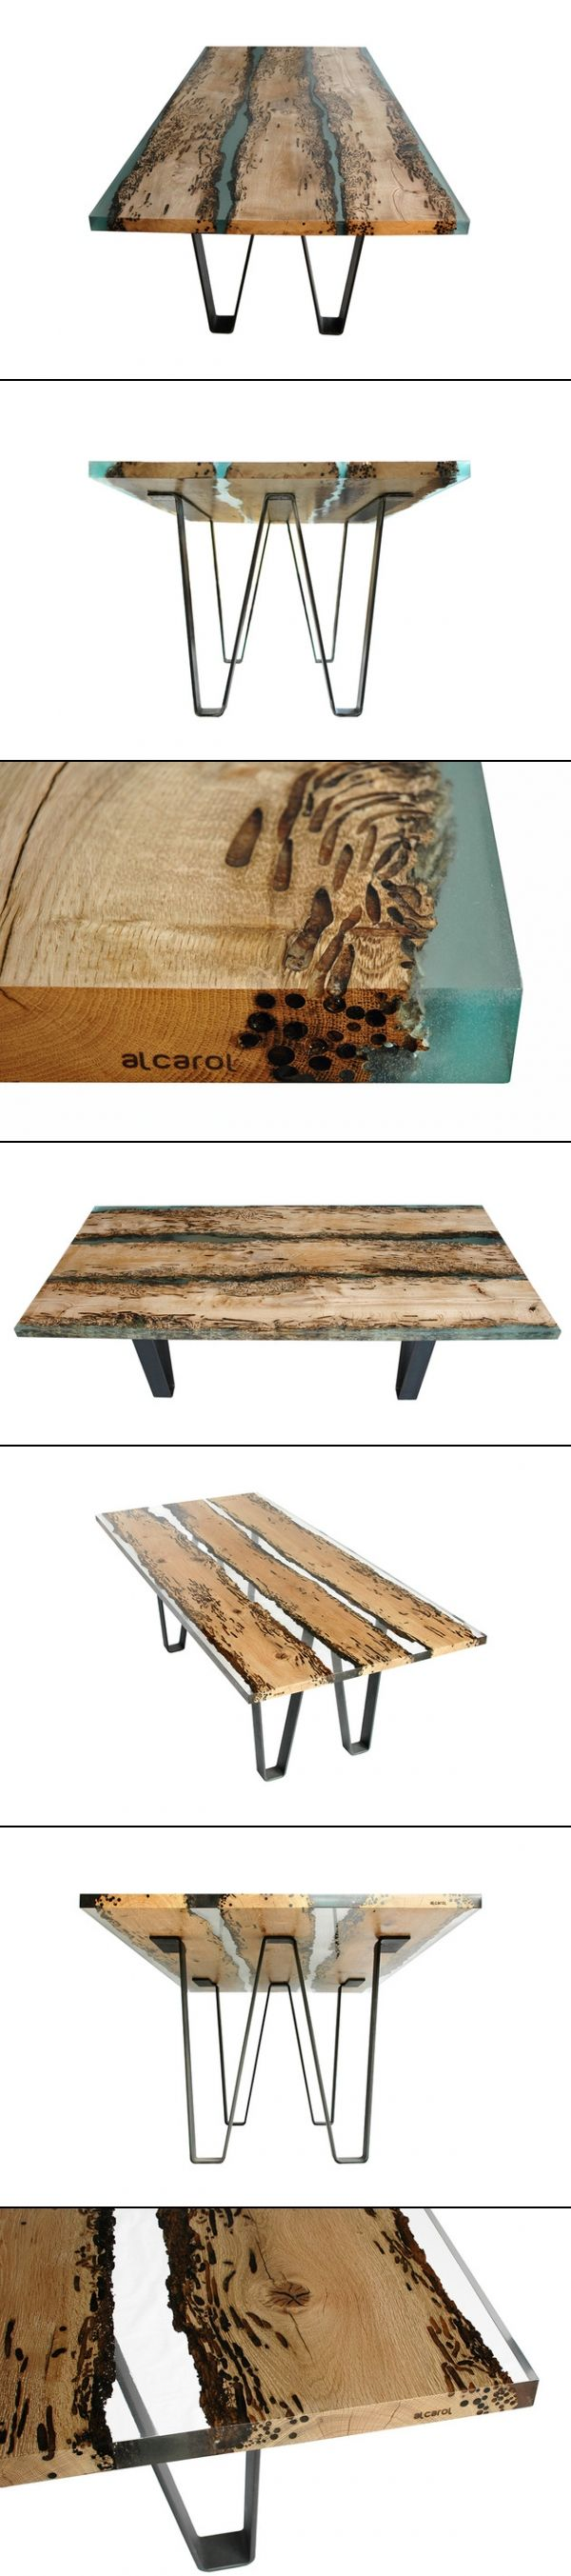 Poetic Wood and Resin Boat Inspired Dining Table | Creative Time | Pinterest | Furniture, Wood furniture and Wood table